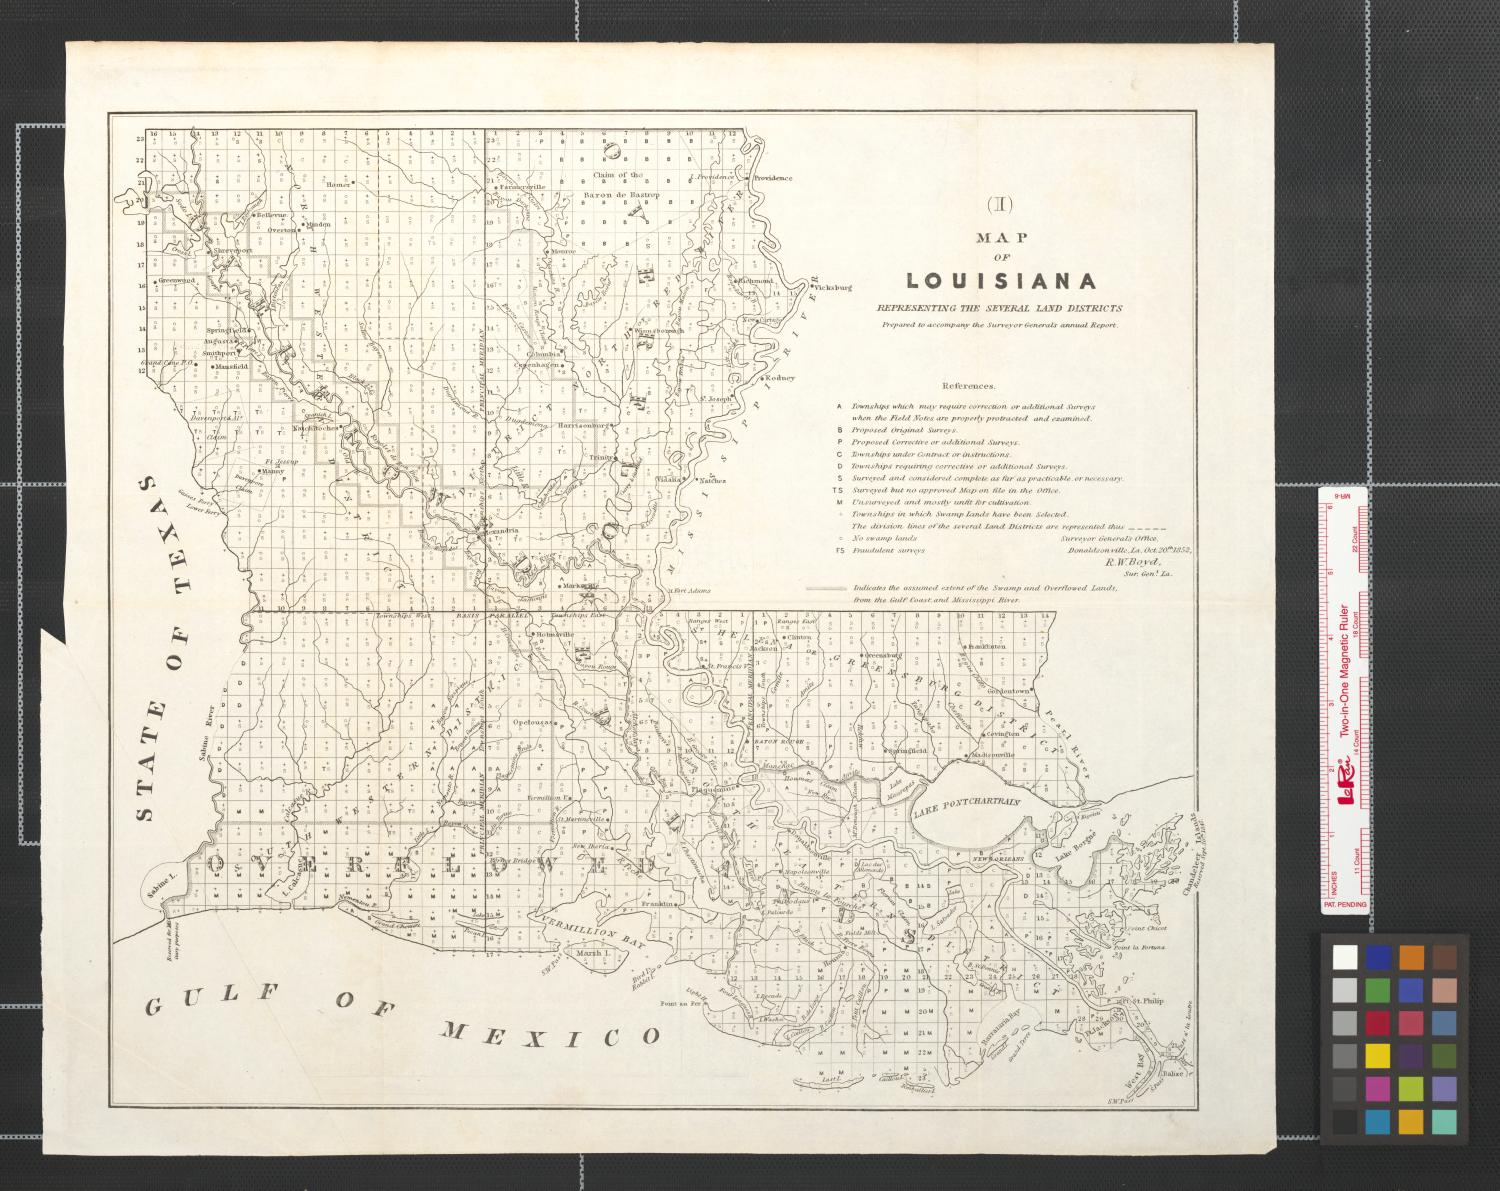 map of louisiana representing the several land districts